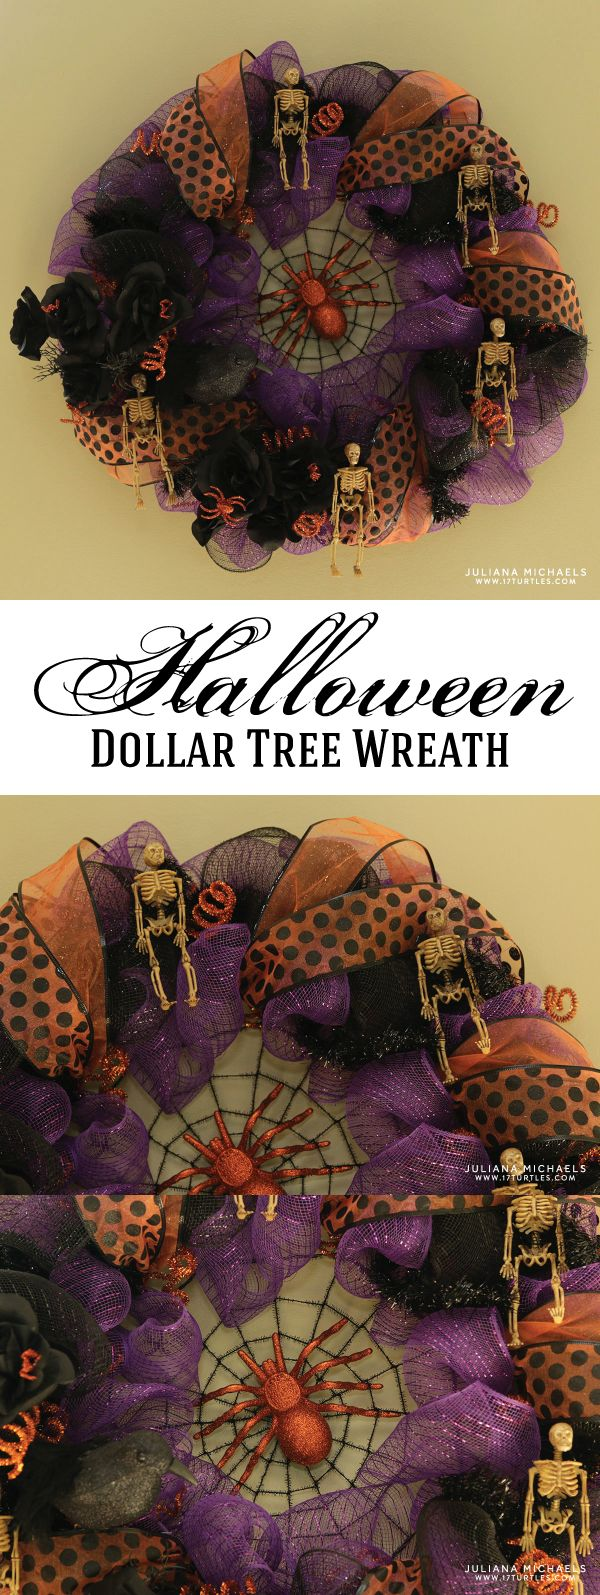 Dollar Tree Halloween Wreath Dollar tree halloween